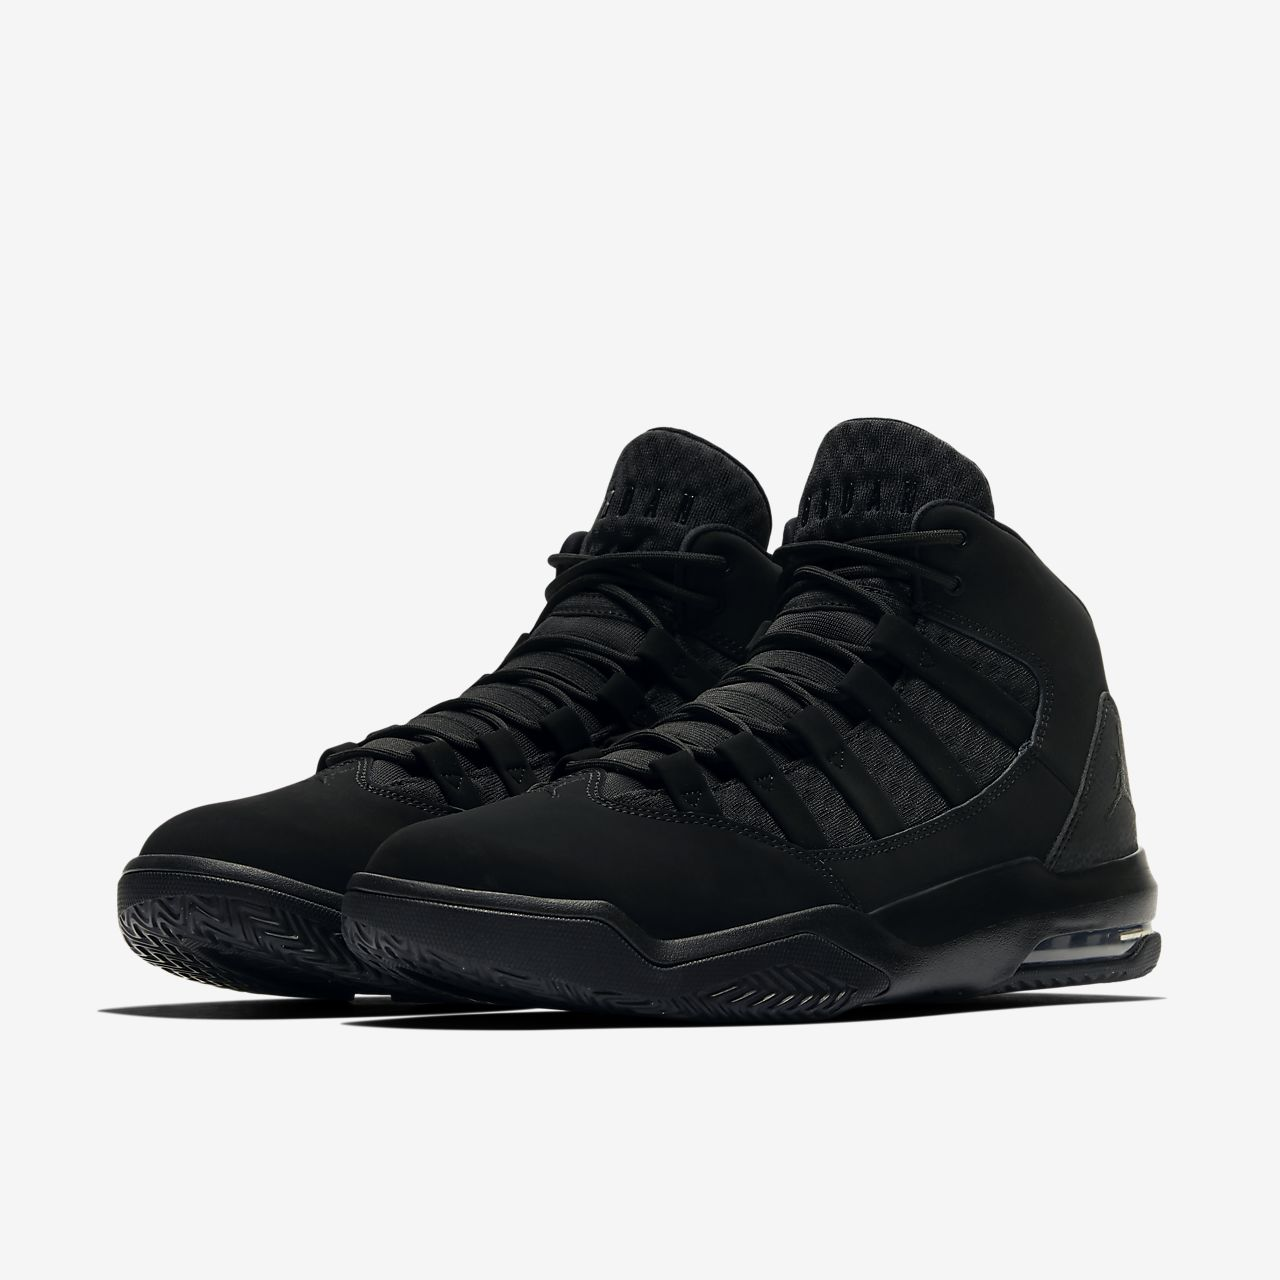 preview of where can i buy aliexpress Chaussure de basketball Jordan Max Aura pour Homme